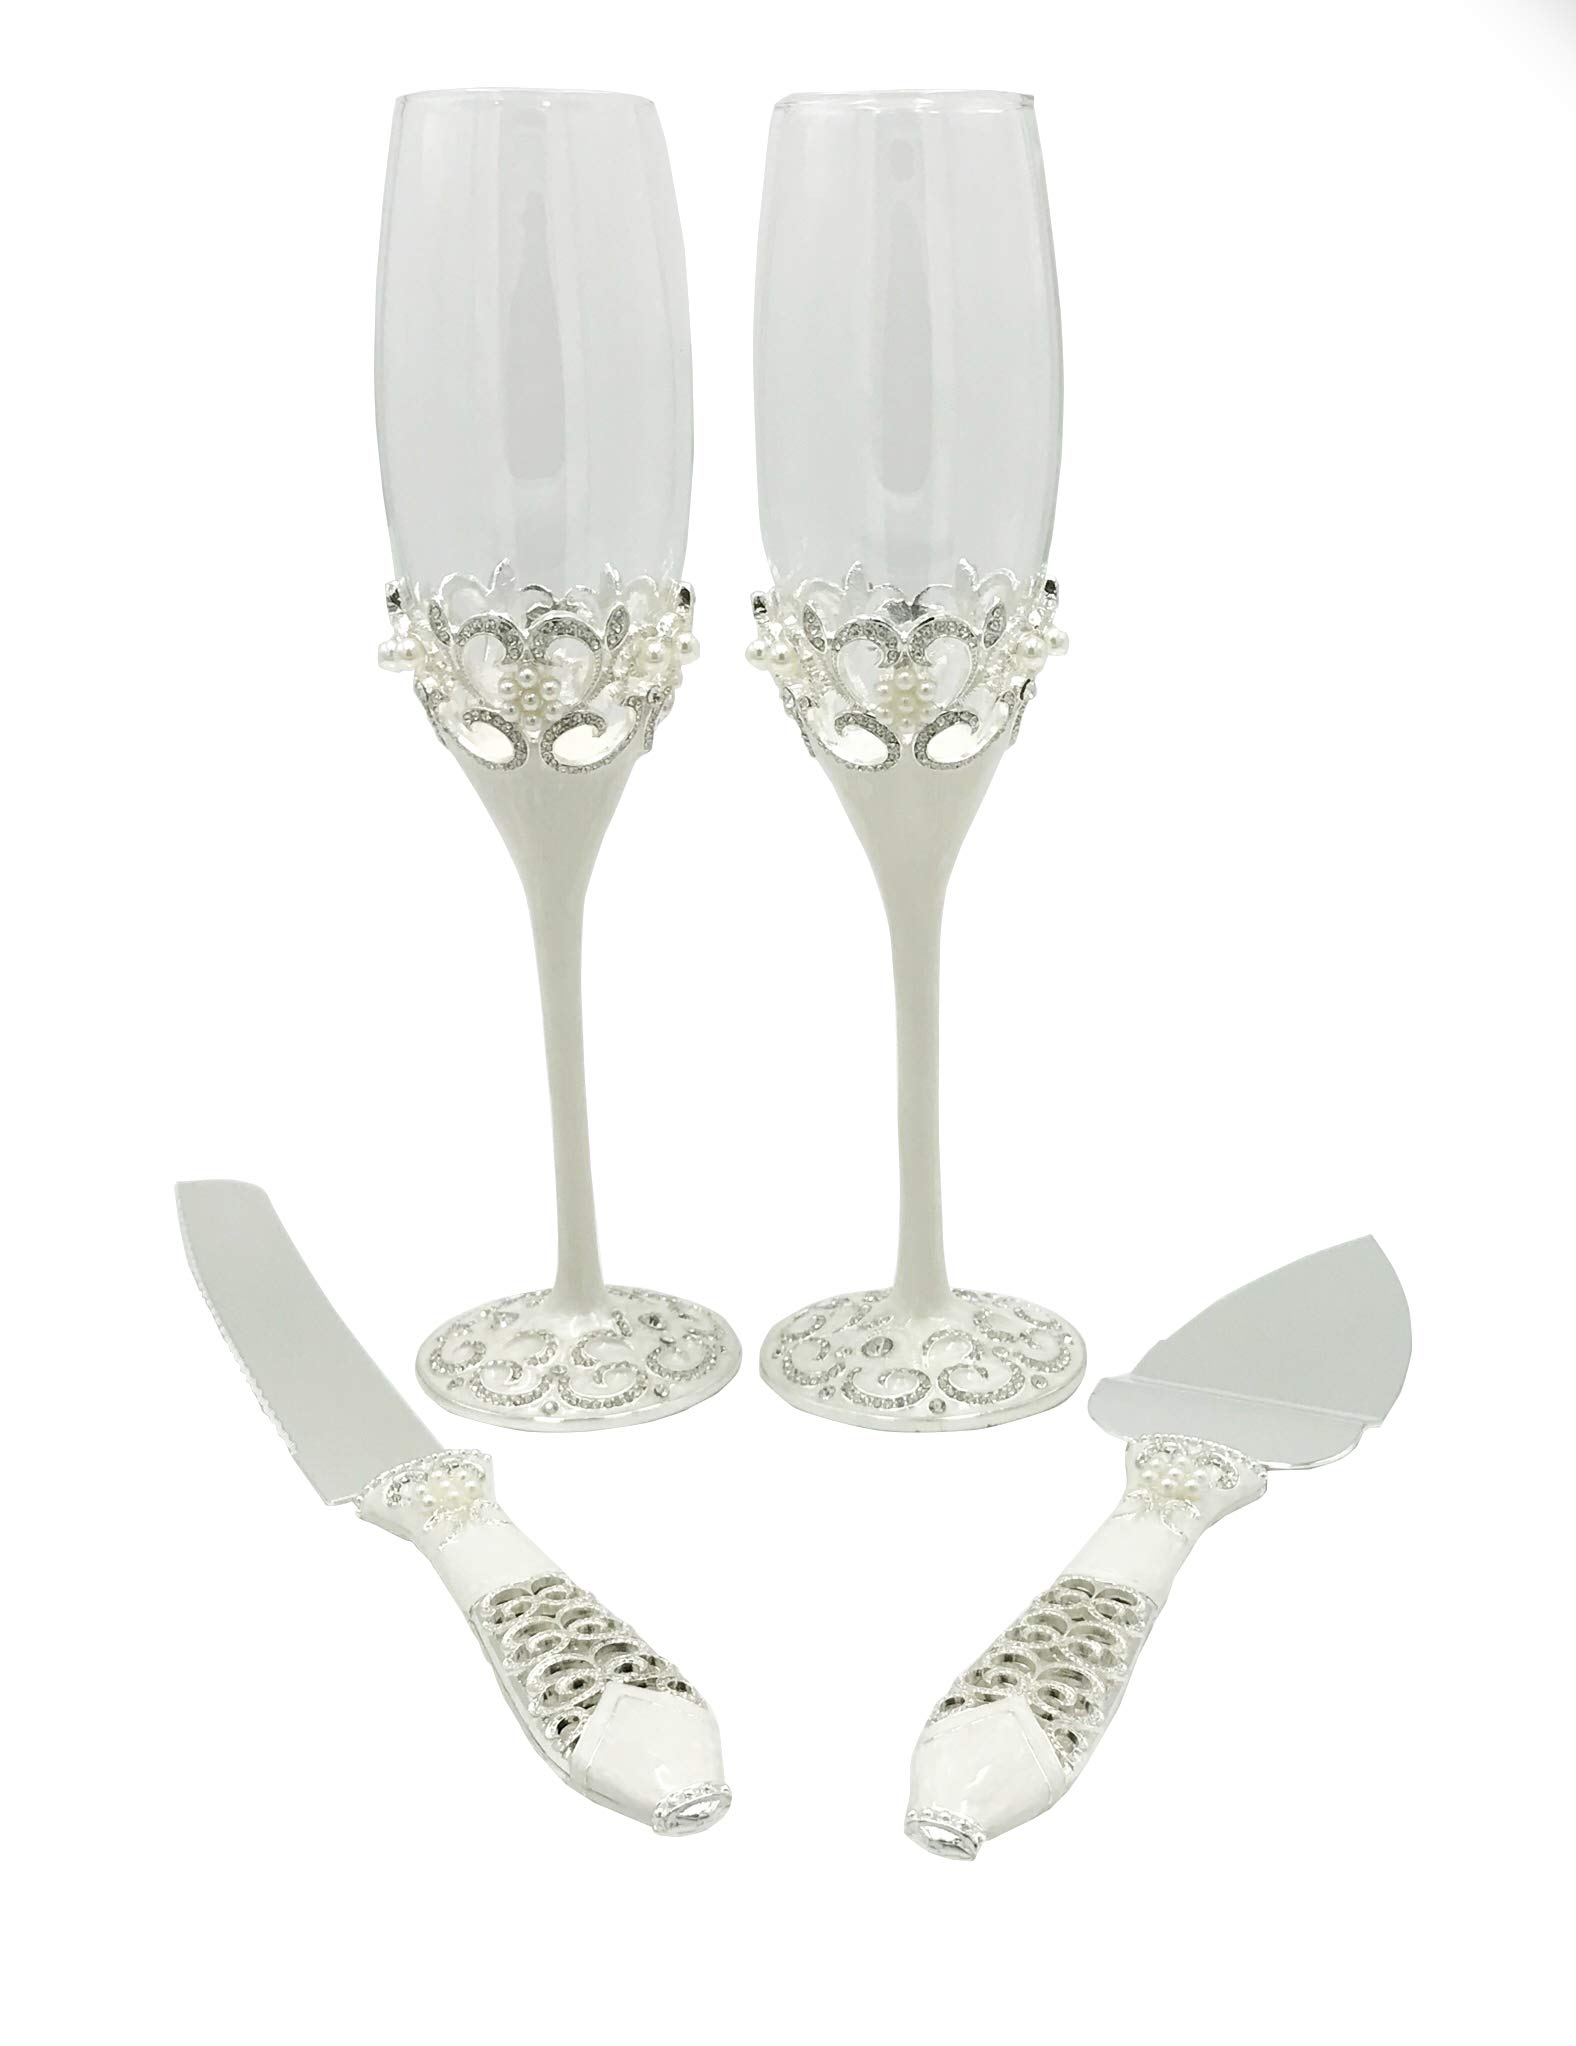 GOLD CREATIVE WEDDING CHAMPAGE TOASTING FLUTES WITH MATCHING CAKE KNIFE AND SERVER SET (Silver)